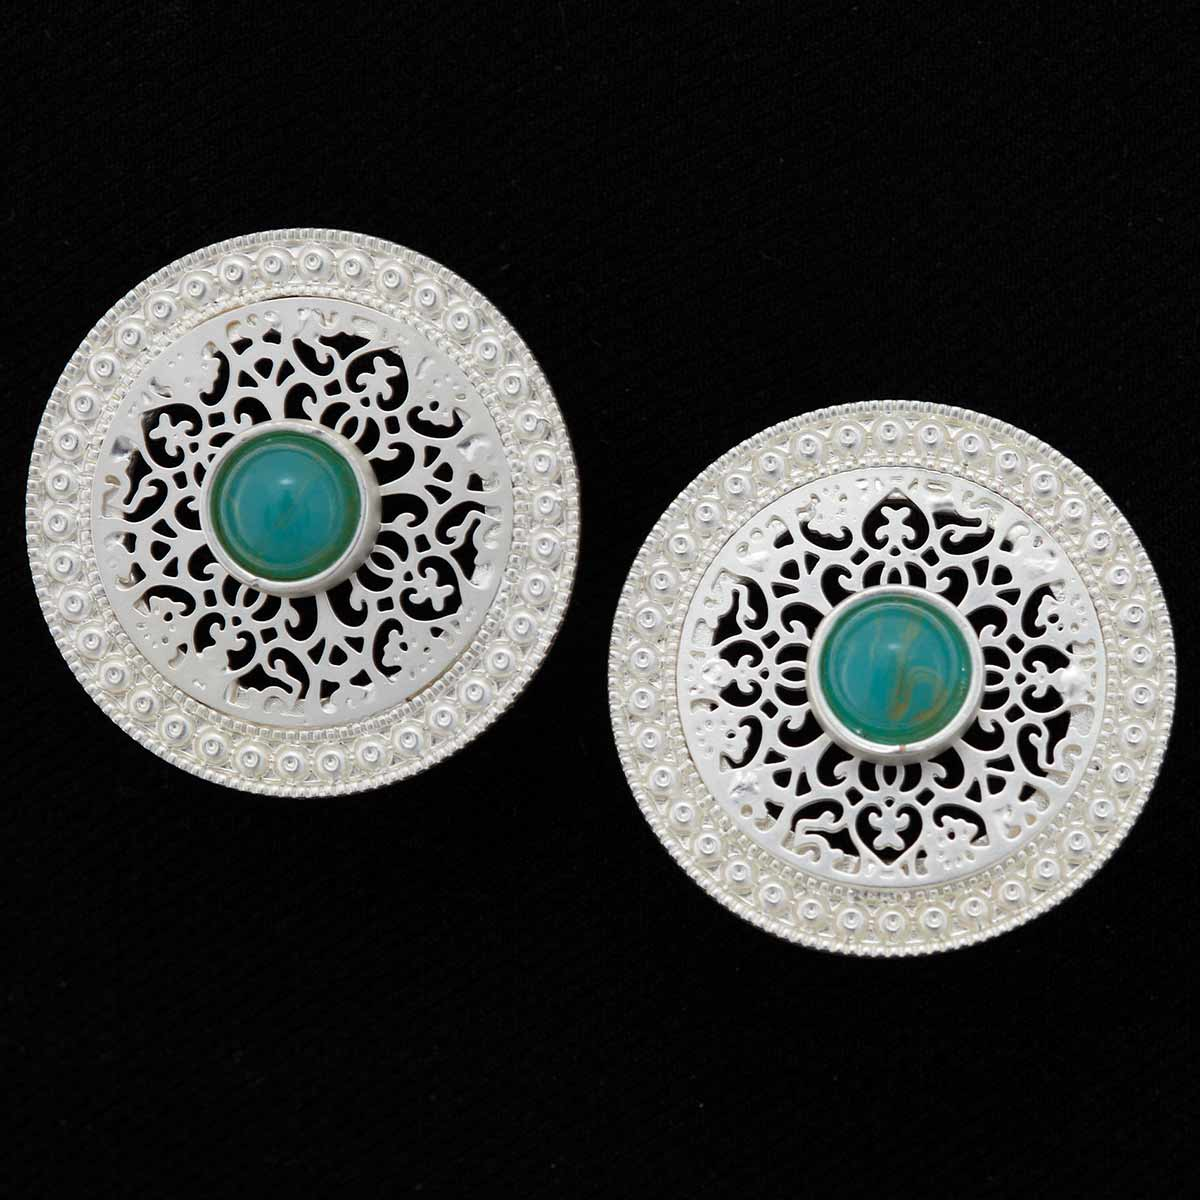 ROUND EARRINGS WITH GREEN STONE